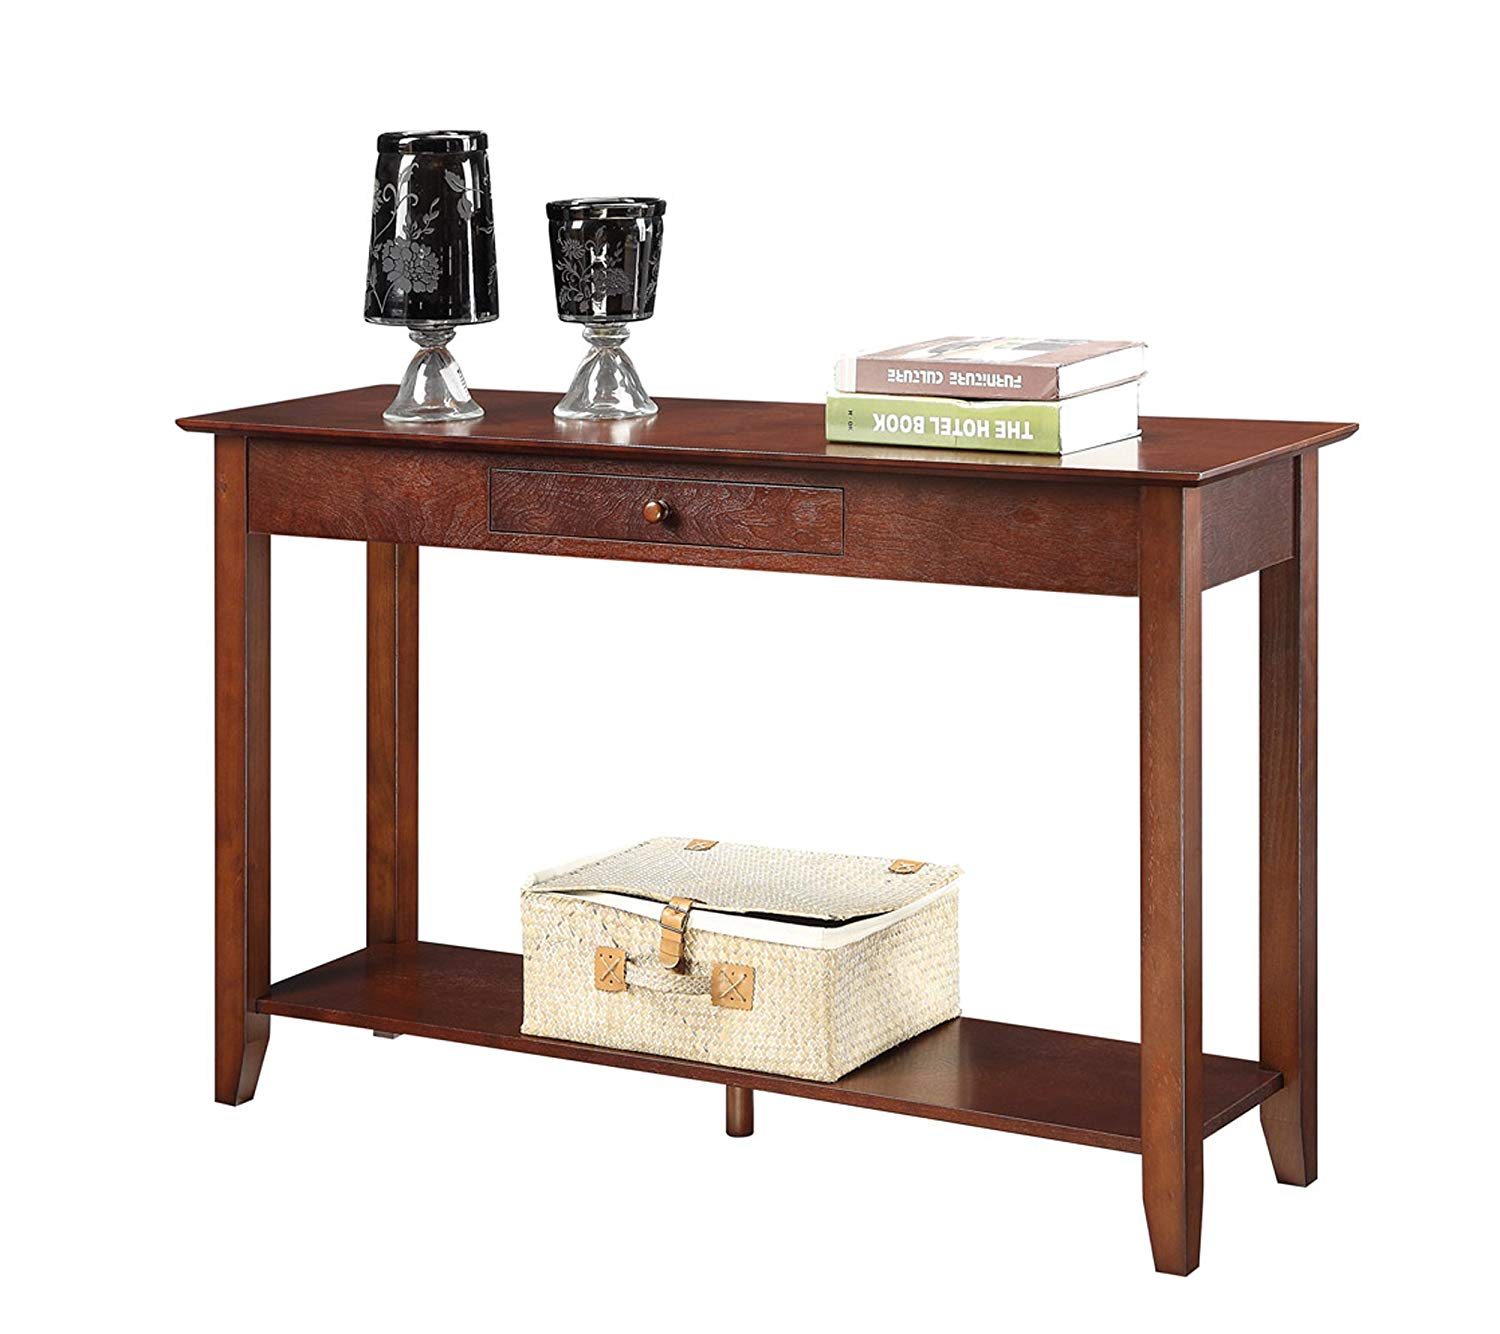 convenience concepts american heritage console table storage accent black room essentials with drawer and shelf espresso kitchen dining iron mouse wired outside box factory direct